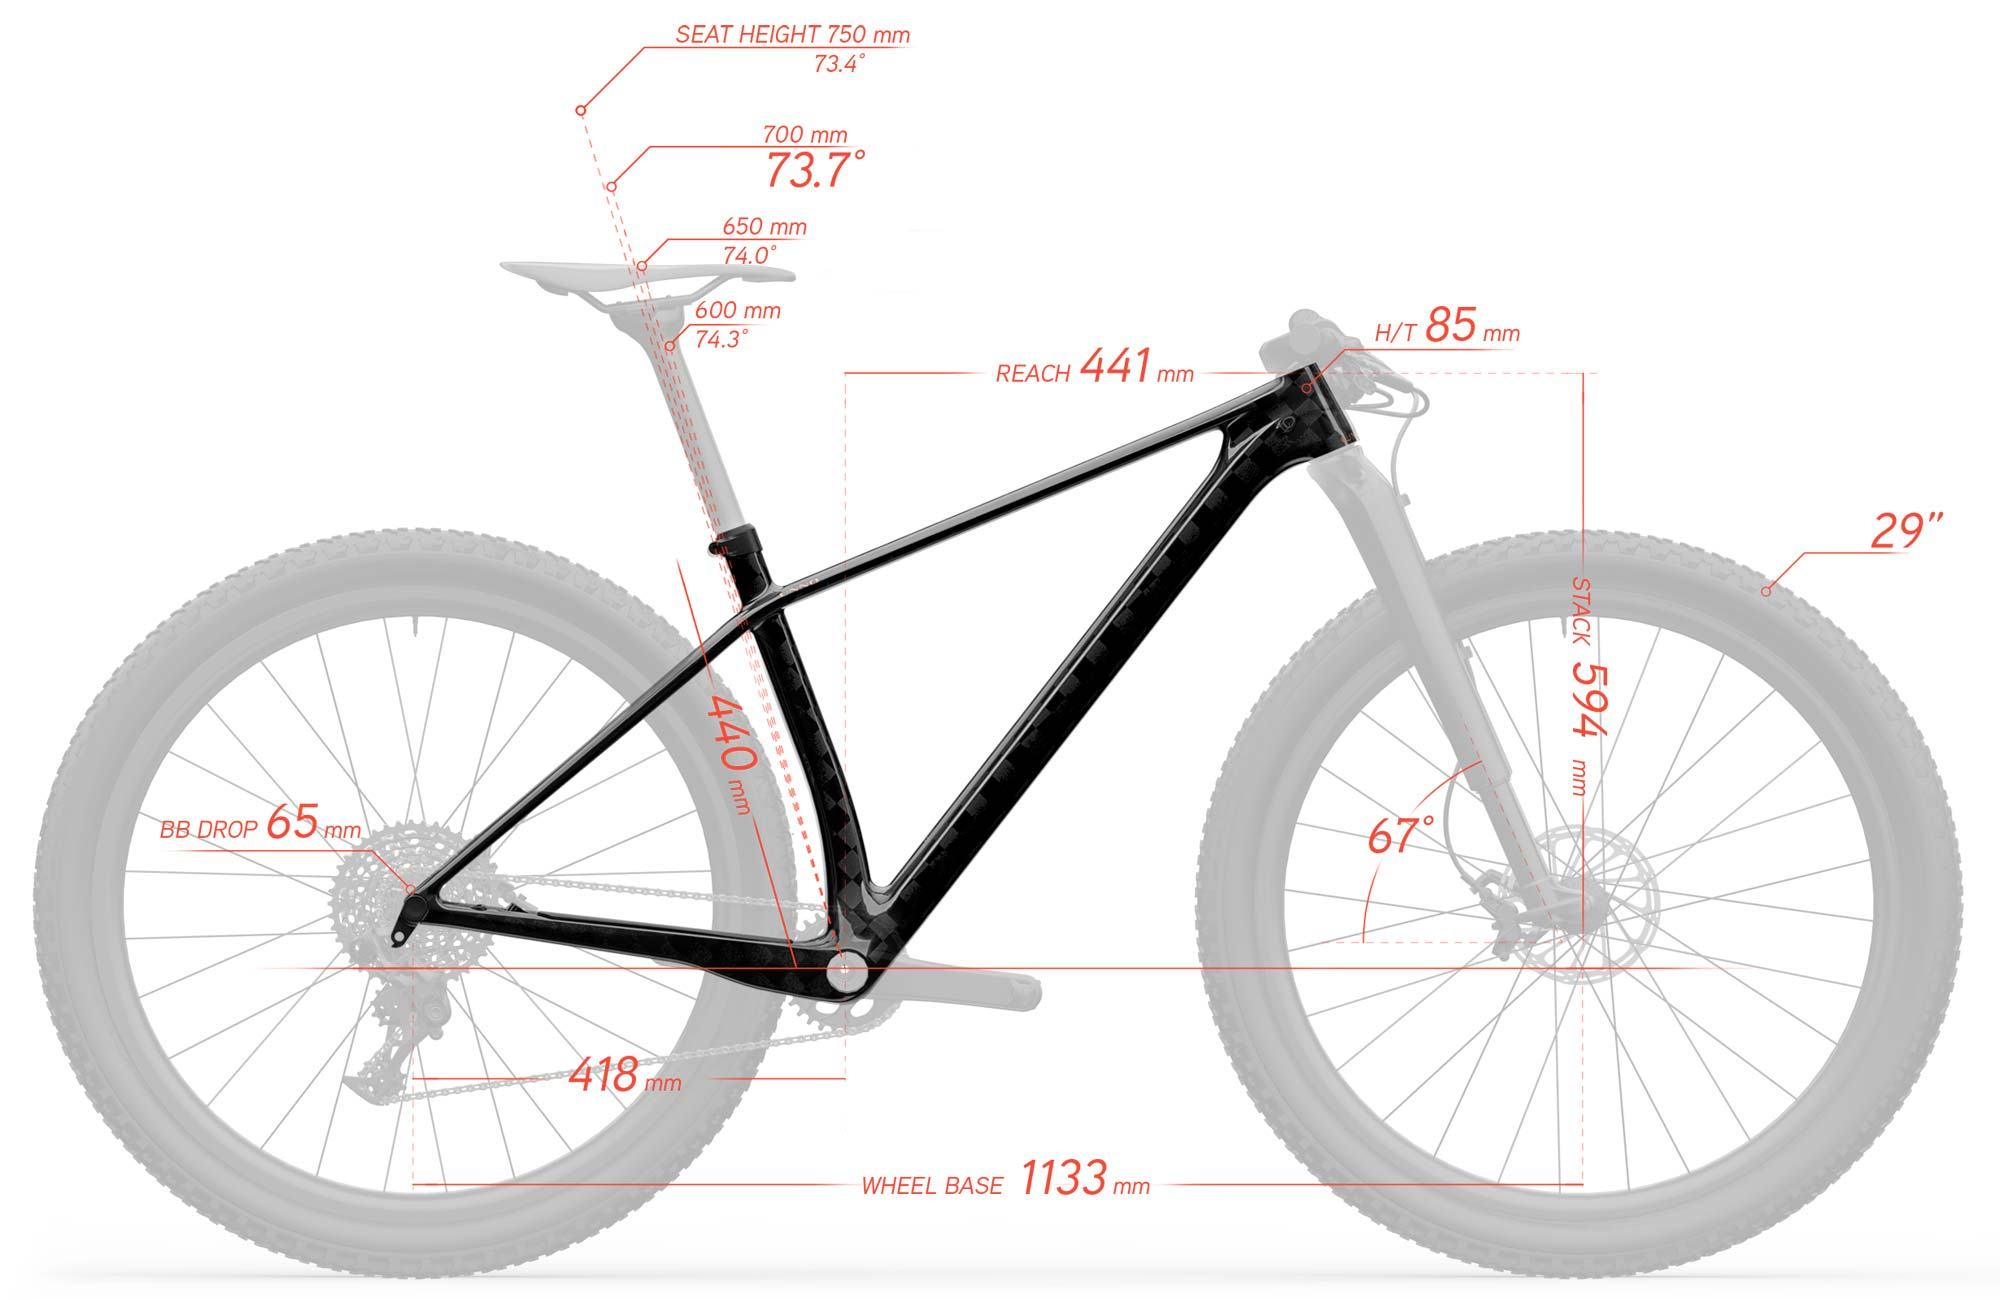 UNNO Aora ultra light carbon XC hardtail mountain bike World's Lightest XC hardtail mountain bike frame geometry